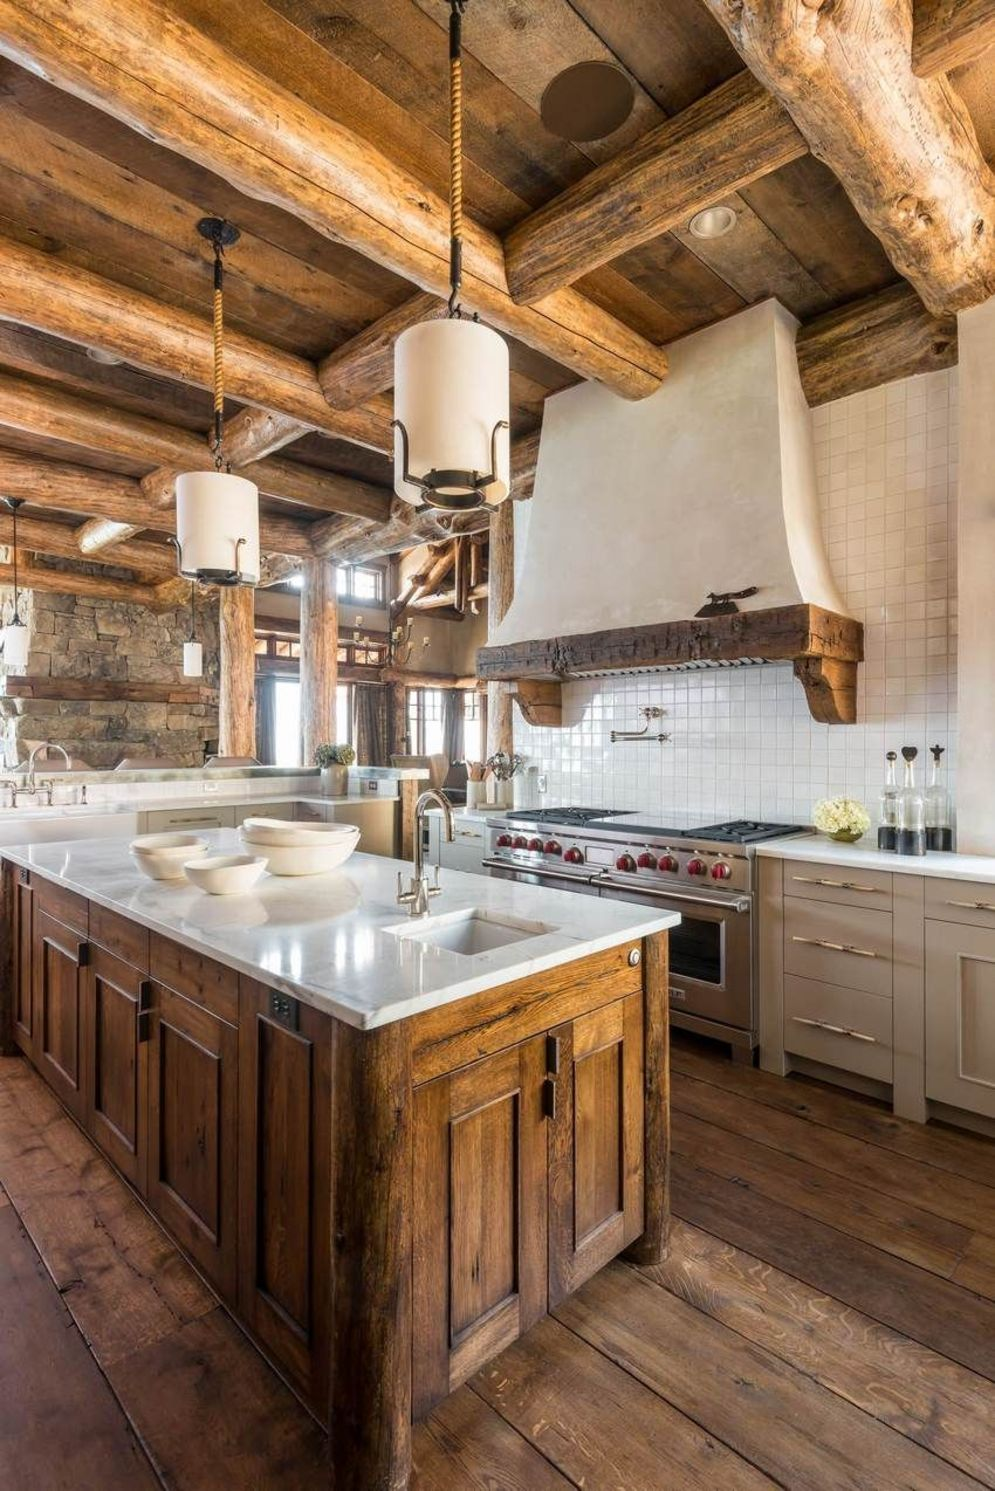 Warm and friendly cabin kitchen displaying rustic interior styles providing ideal space for a perfect retreat Image 34